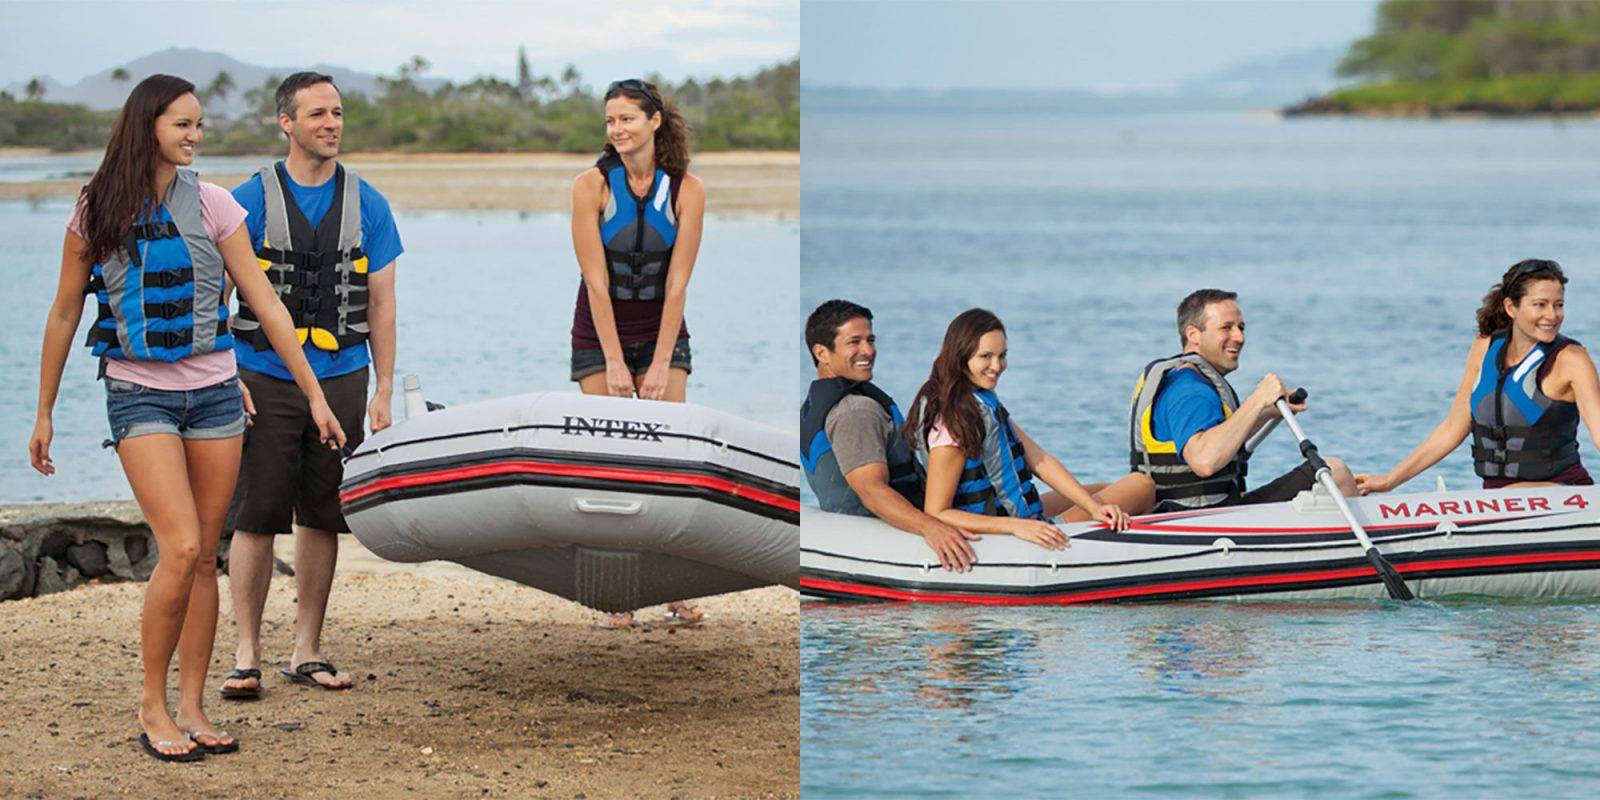 It's not too late to hit the lake w/ Intex's Mariner 4